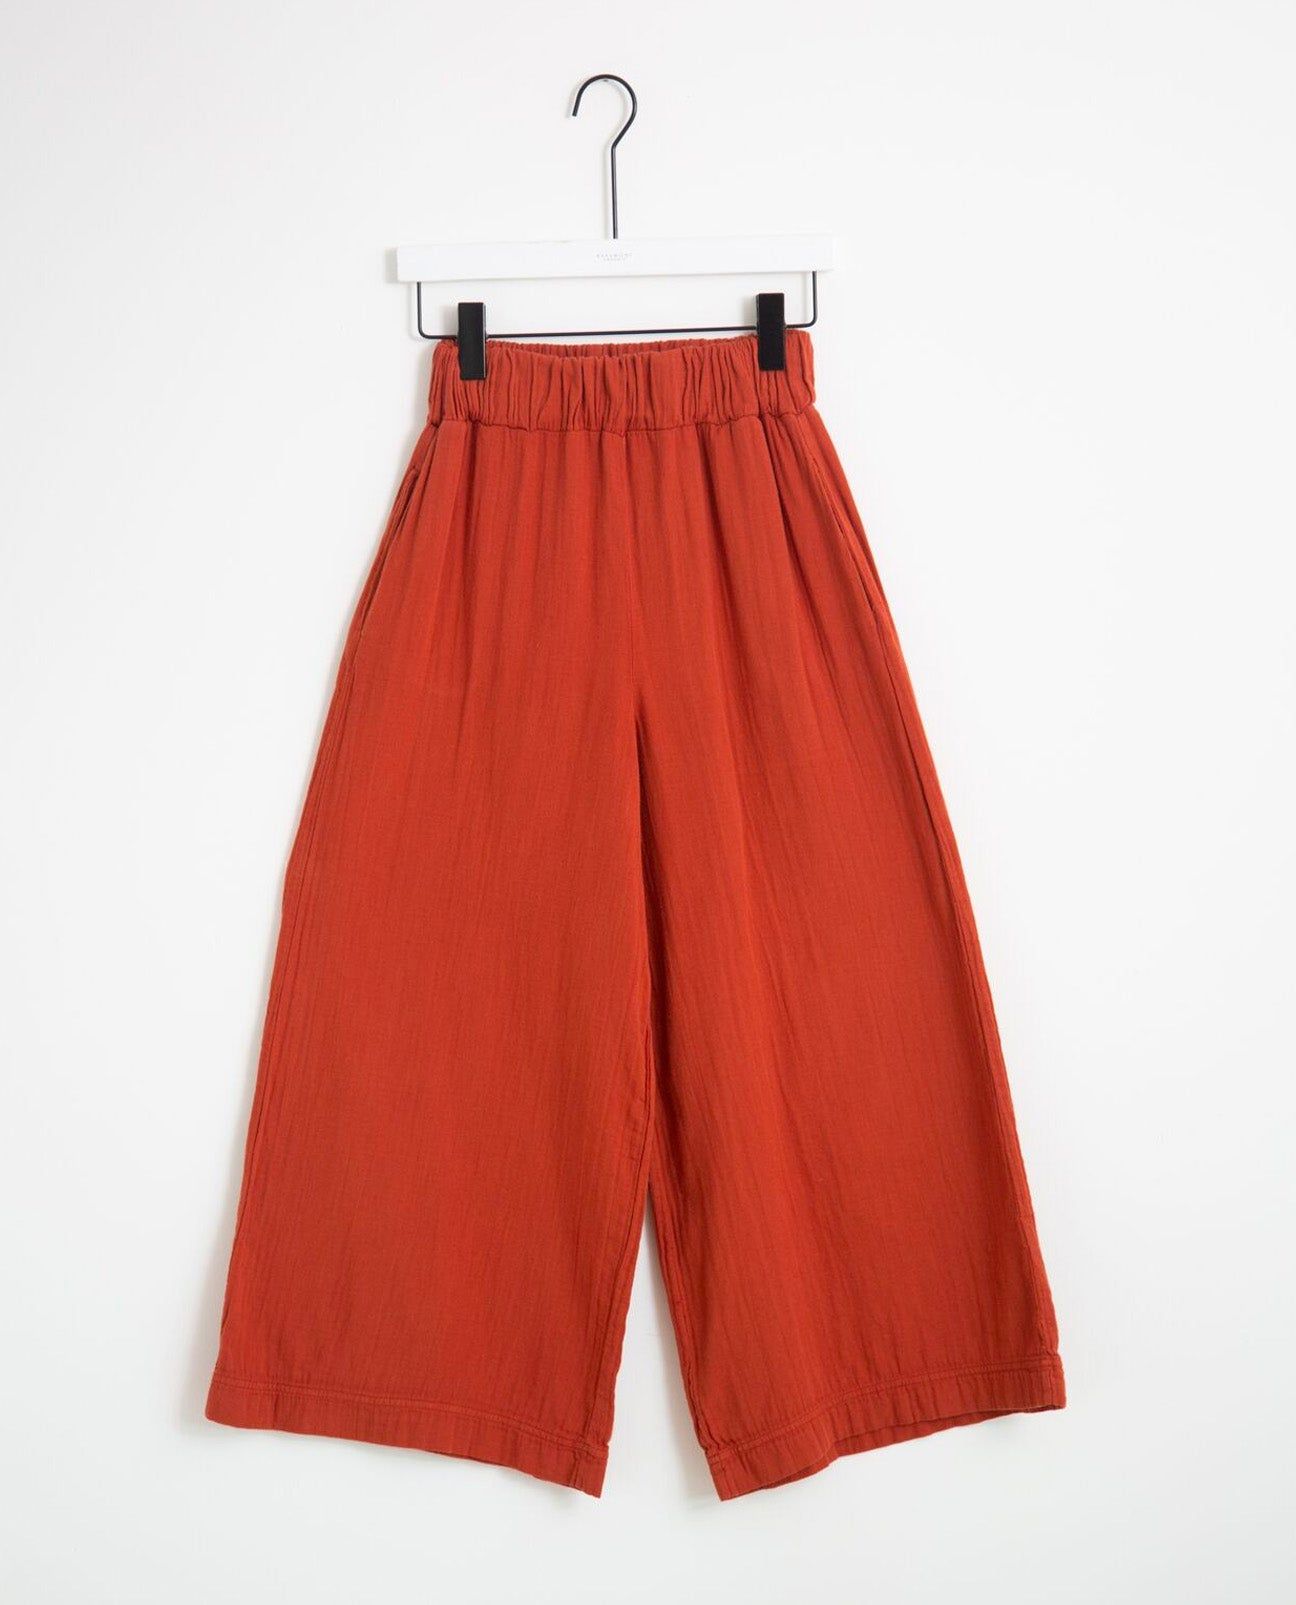 Evora Organic Cotton Trousers In Cinnamon